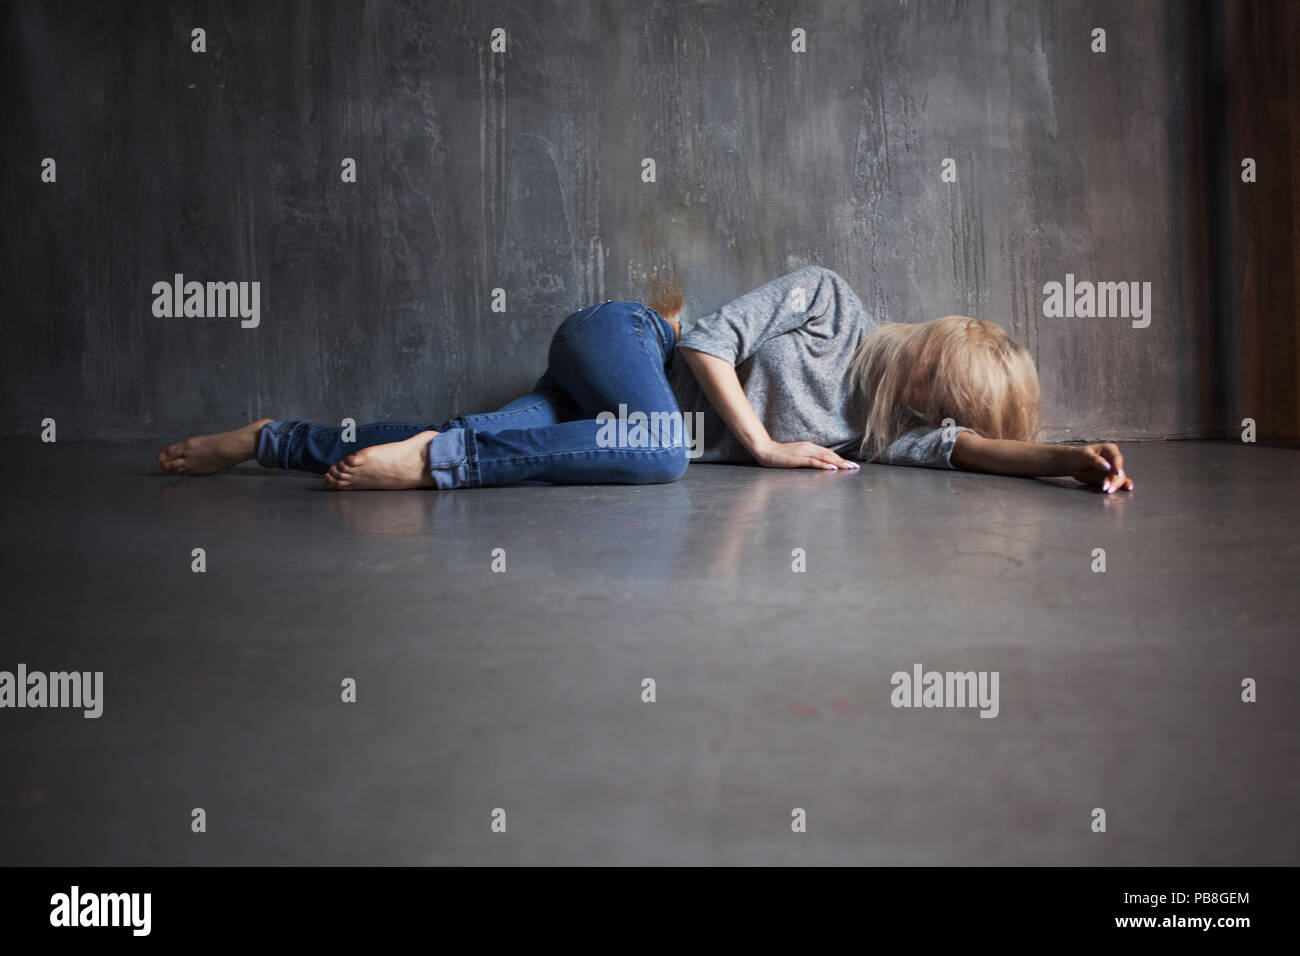 Mental health. Young woman lying on the floor, concept of stress or post-traumatic disorder - Stock Image